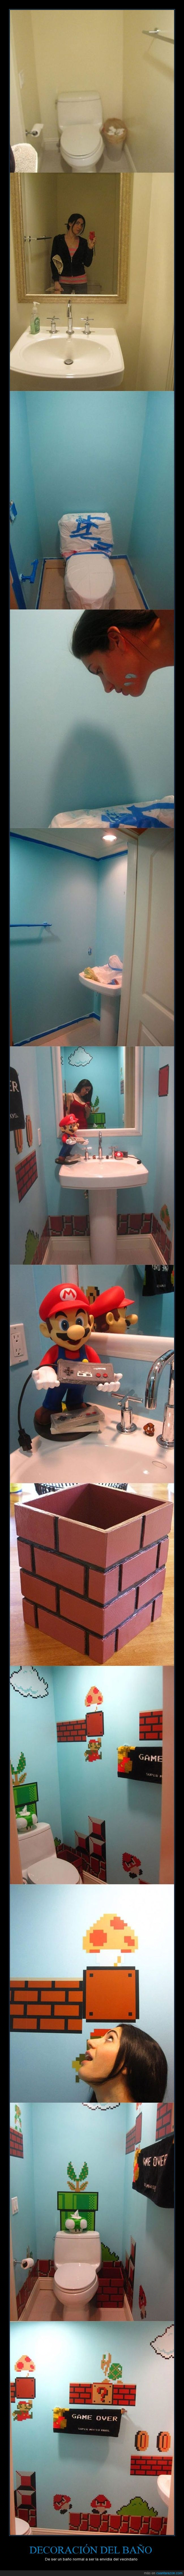 baño,decorar,goomba,increible,monedas,super mario